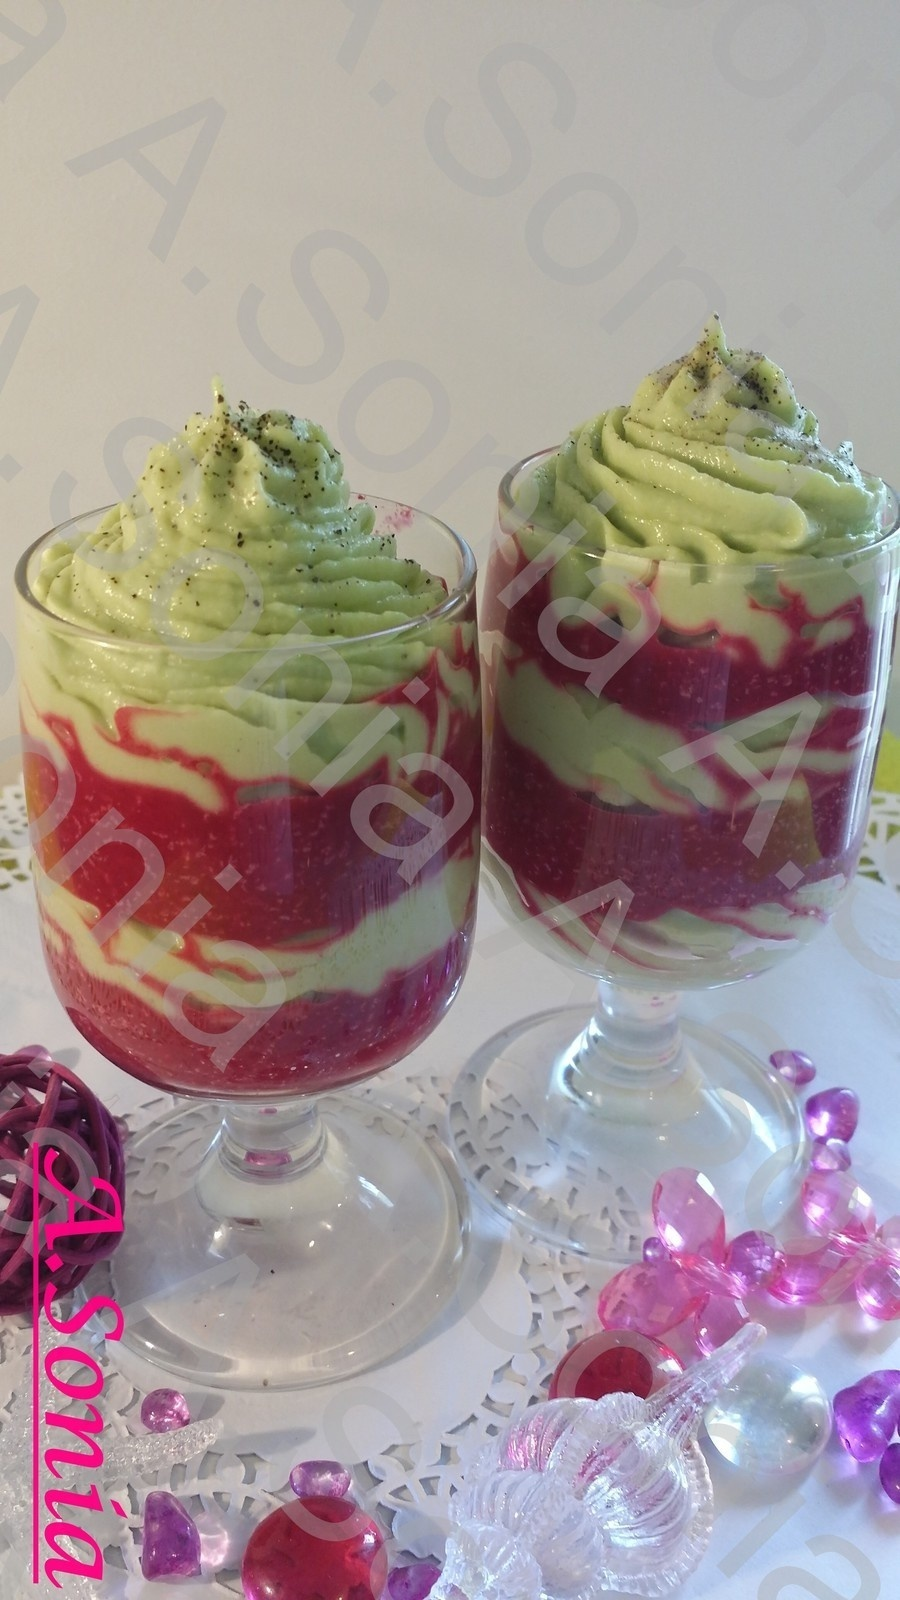 Mousse à l'avocat et betteraves relevées à l'ail